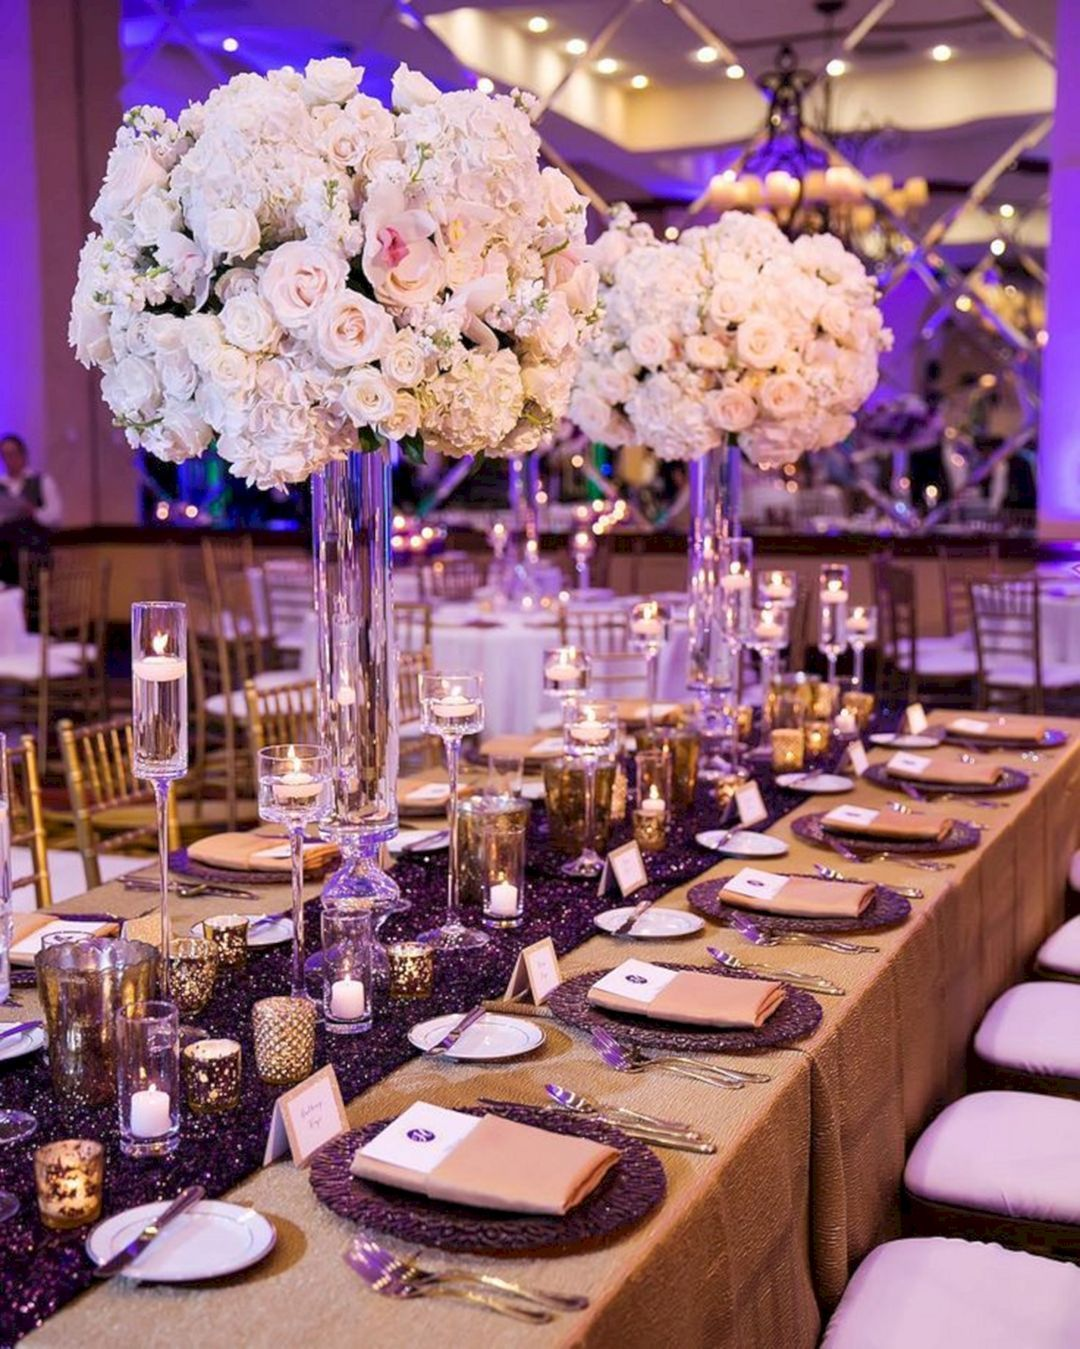 15 blue and purple wedding lighting ideas for stunning party